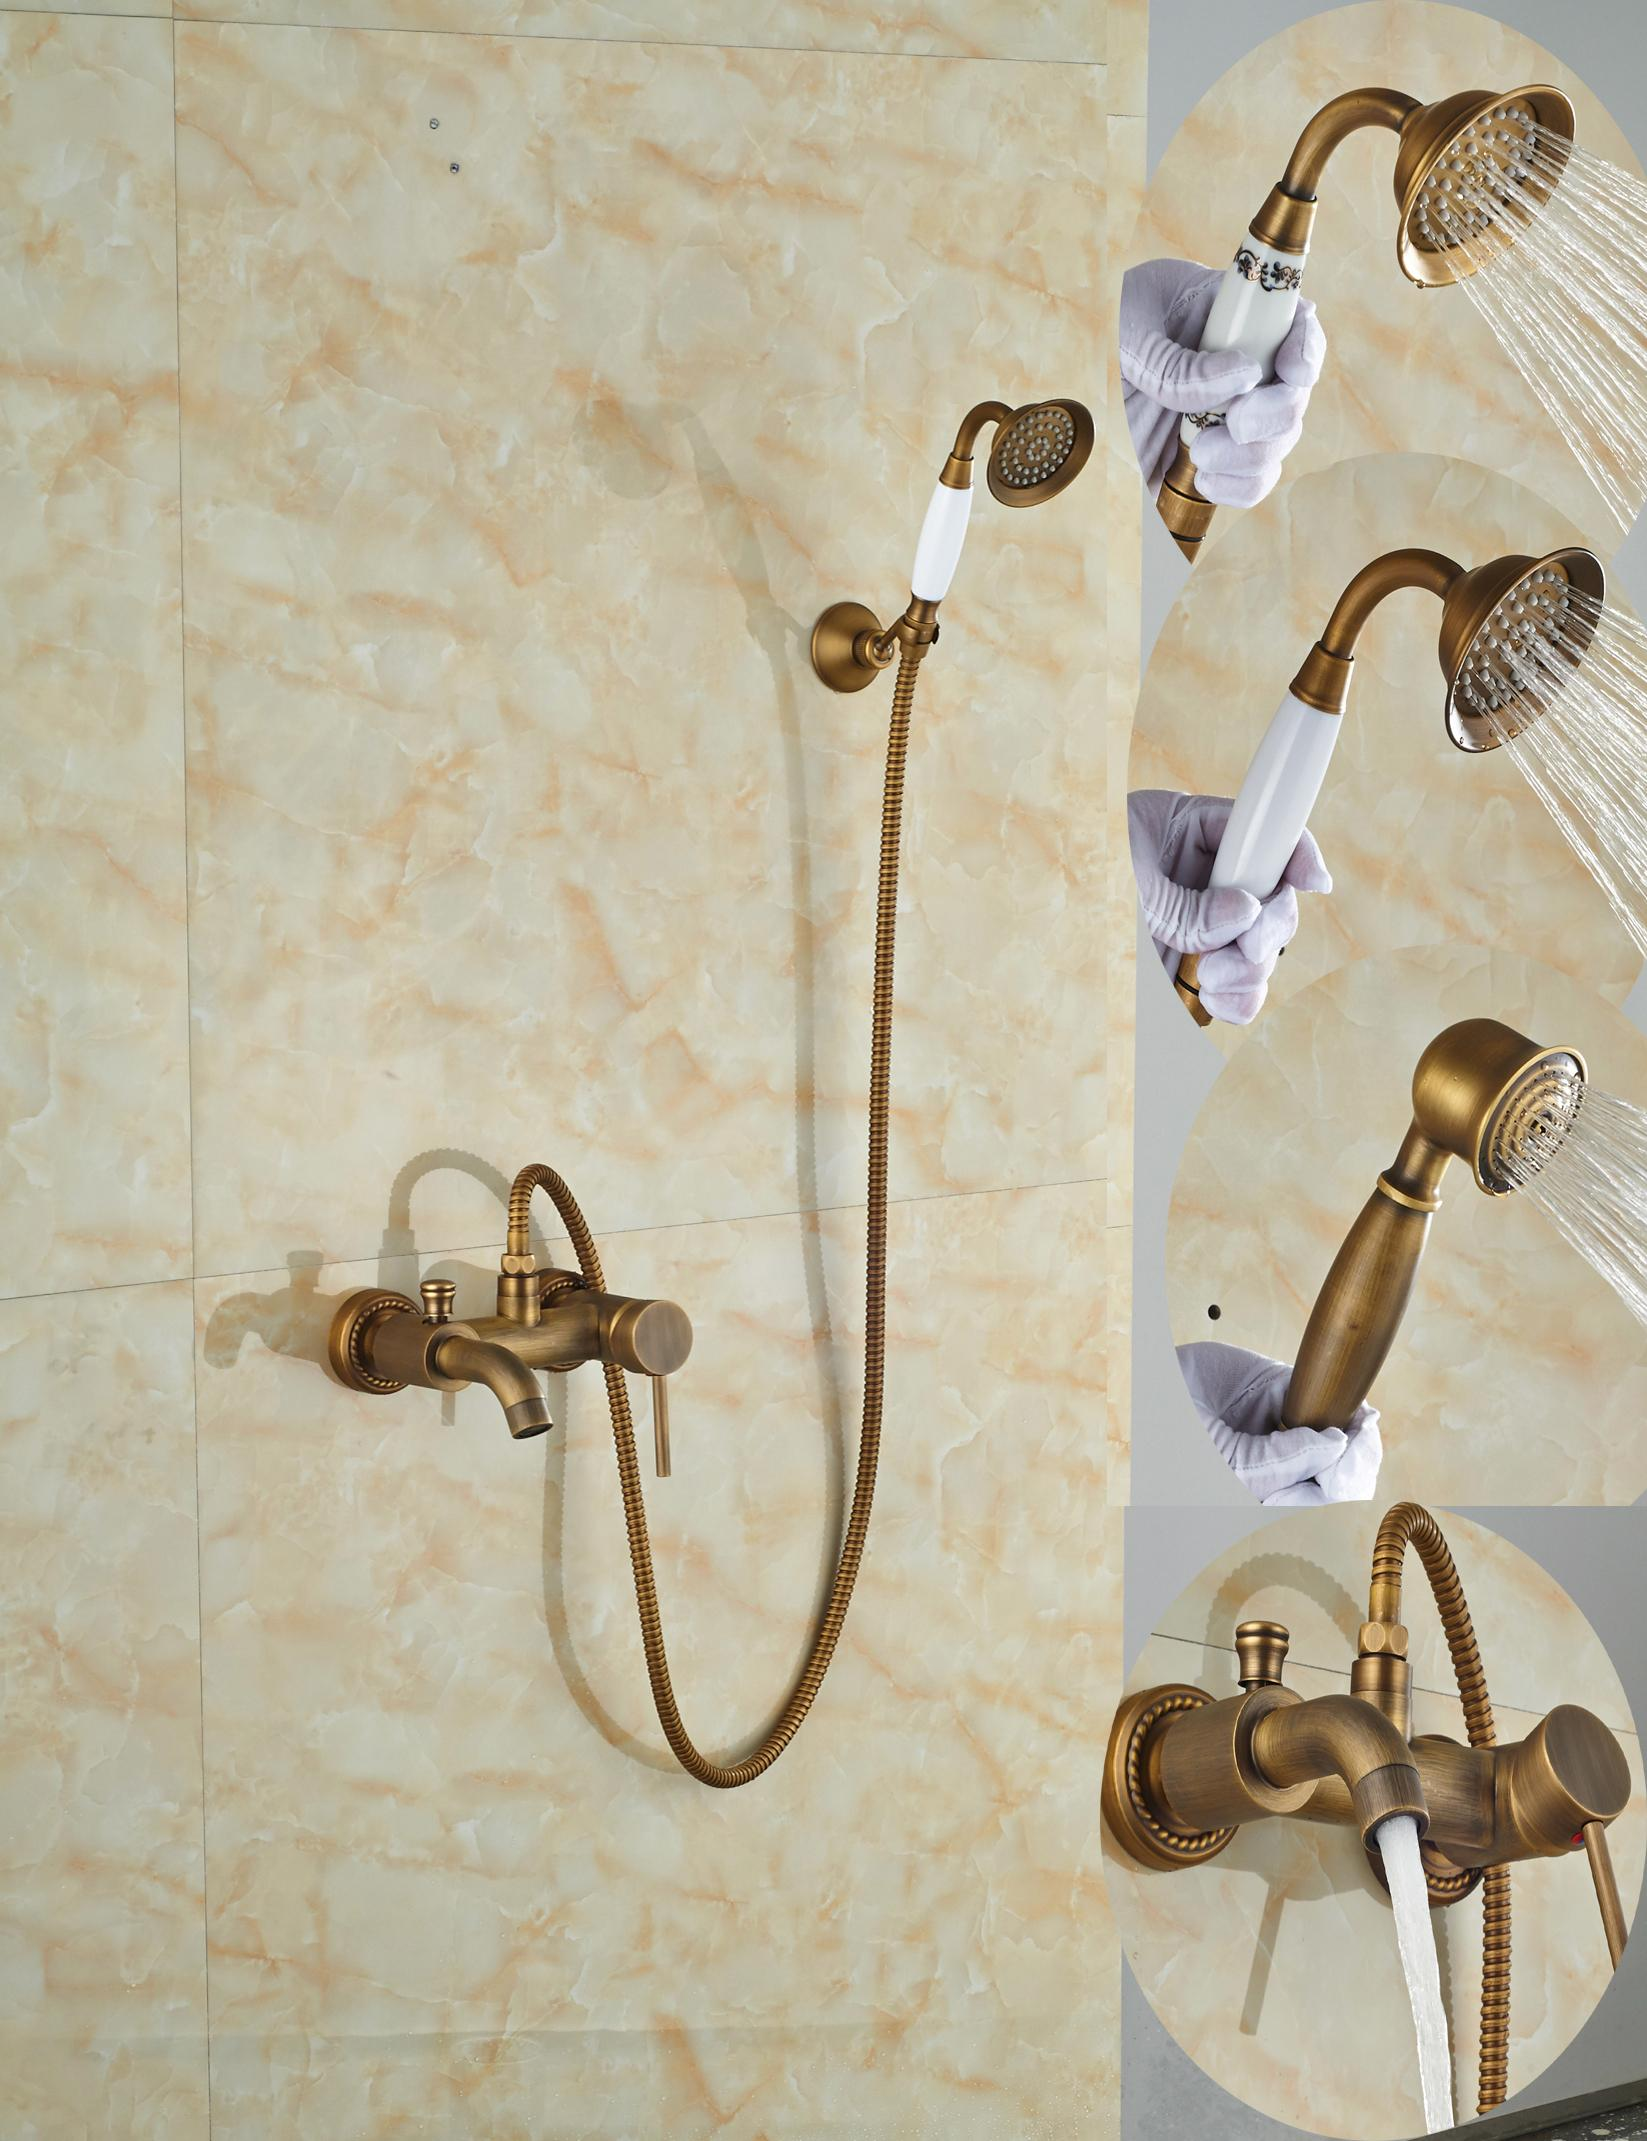 Wholesale And Retail Promotion Wall Mounted Bathroom Tub Faucet Rain Shower Hand Sprayer W/ Tub Spout Mixer Tap Antique Brass